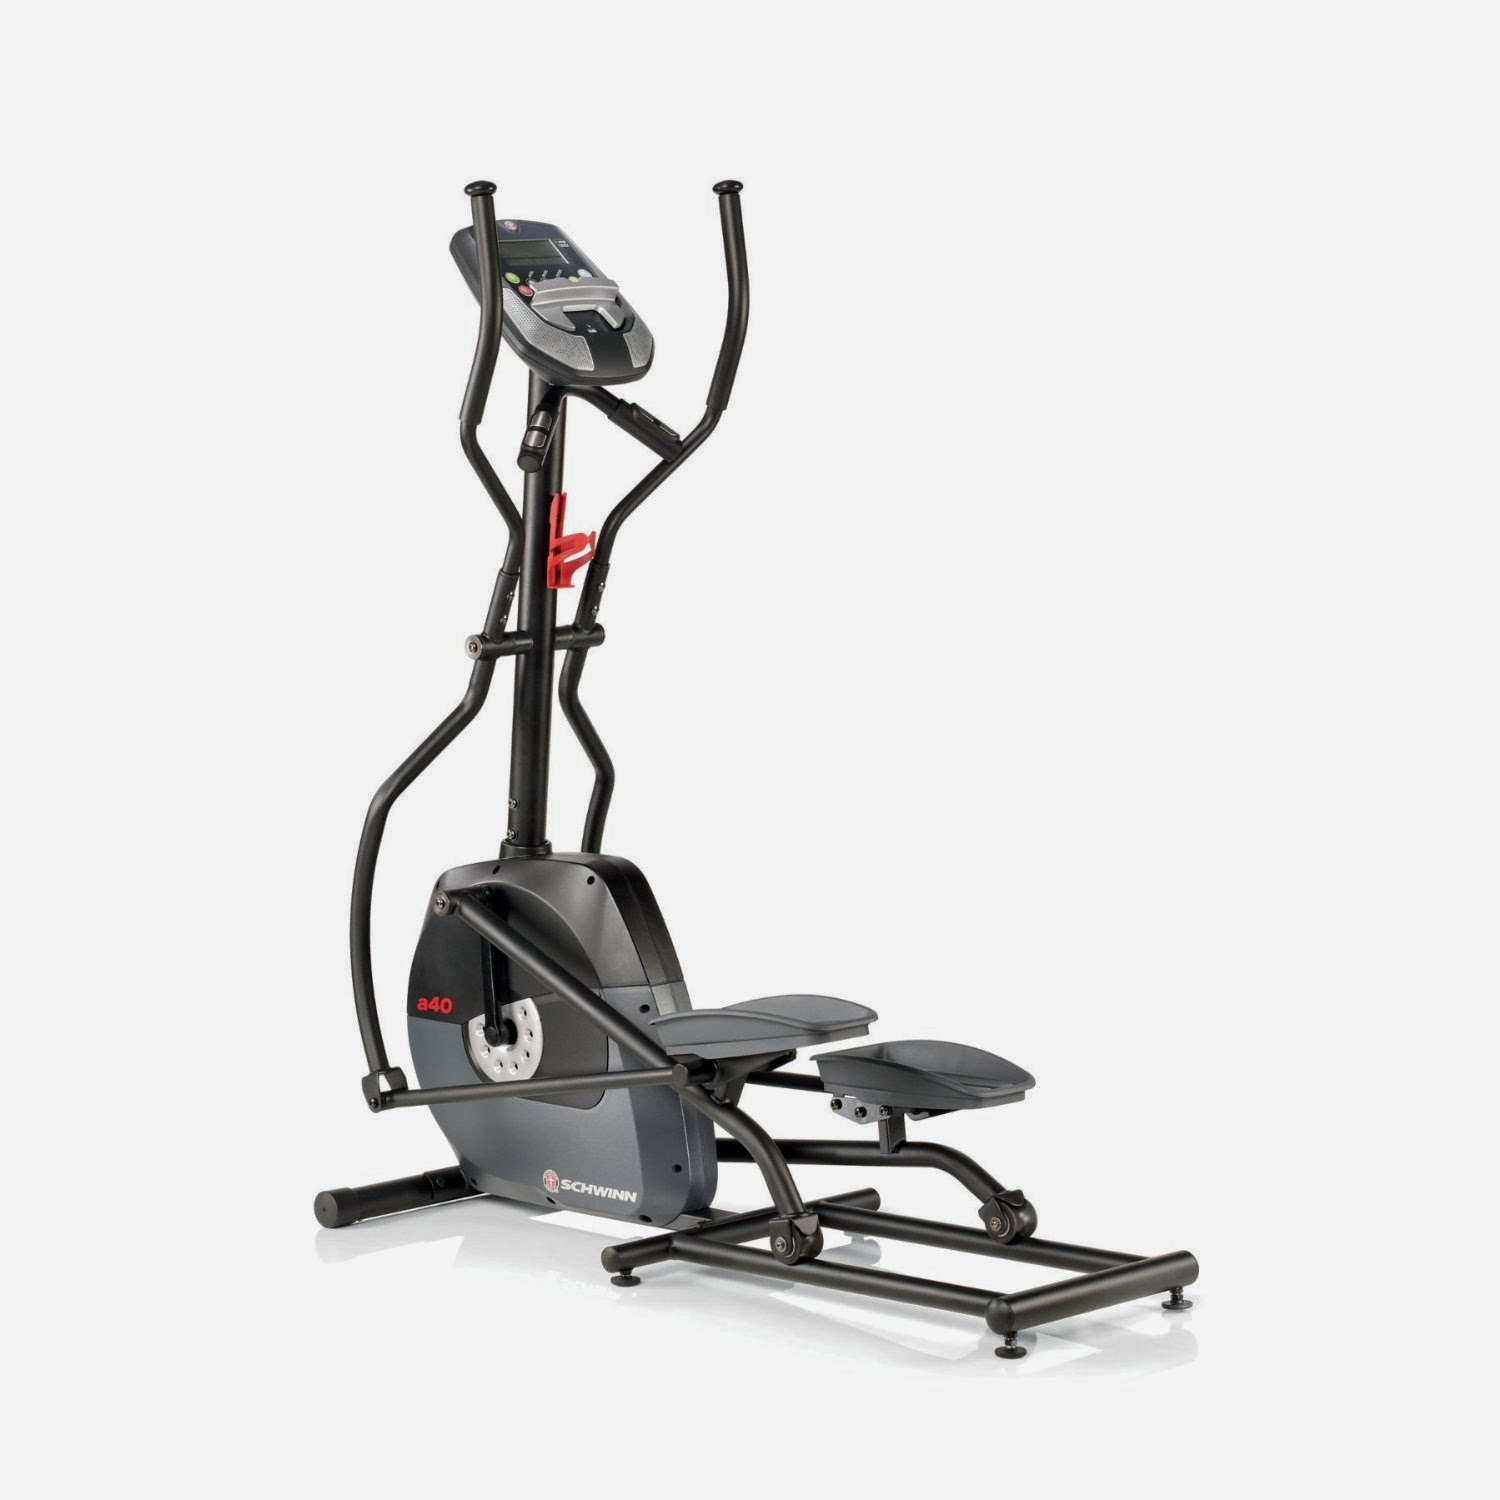 Schwinn A40 Elliptical Trainer Machine reviewed, features, 7 programs, 8 resistance levels, buy at low price